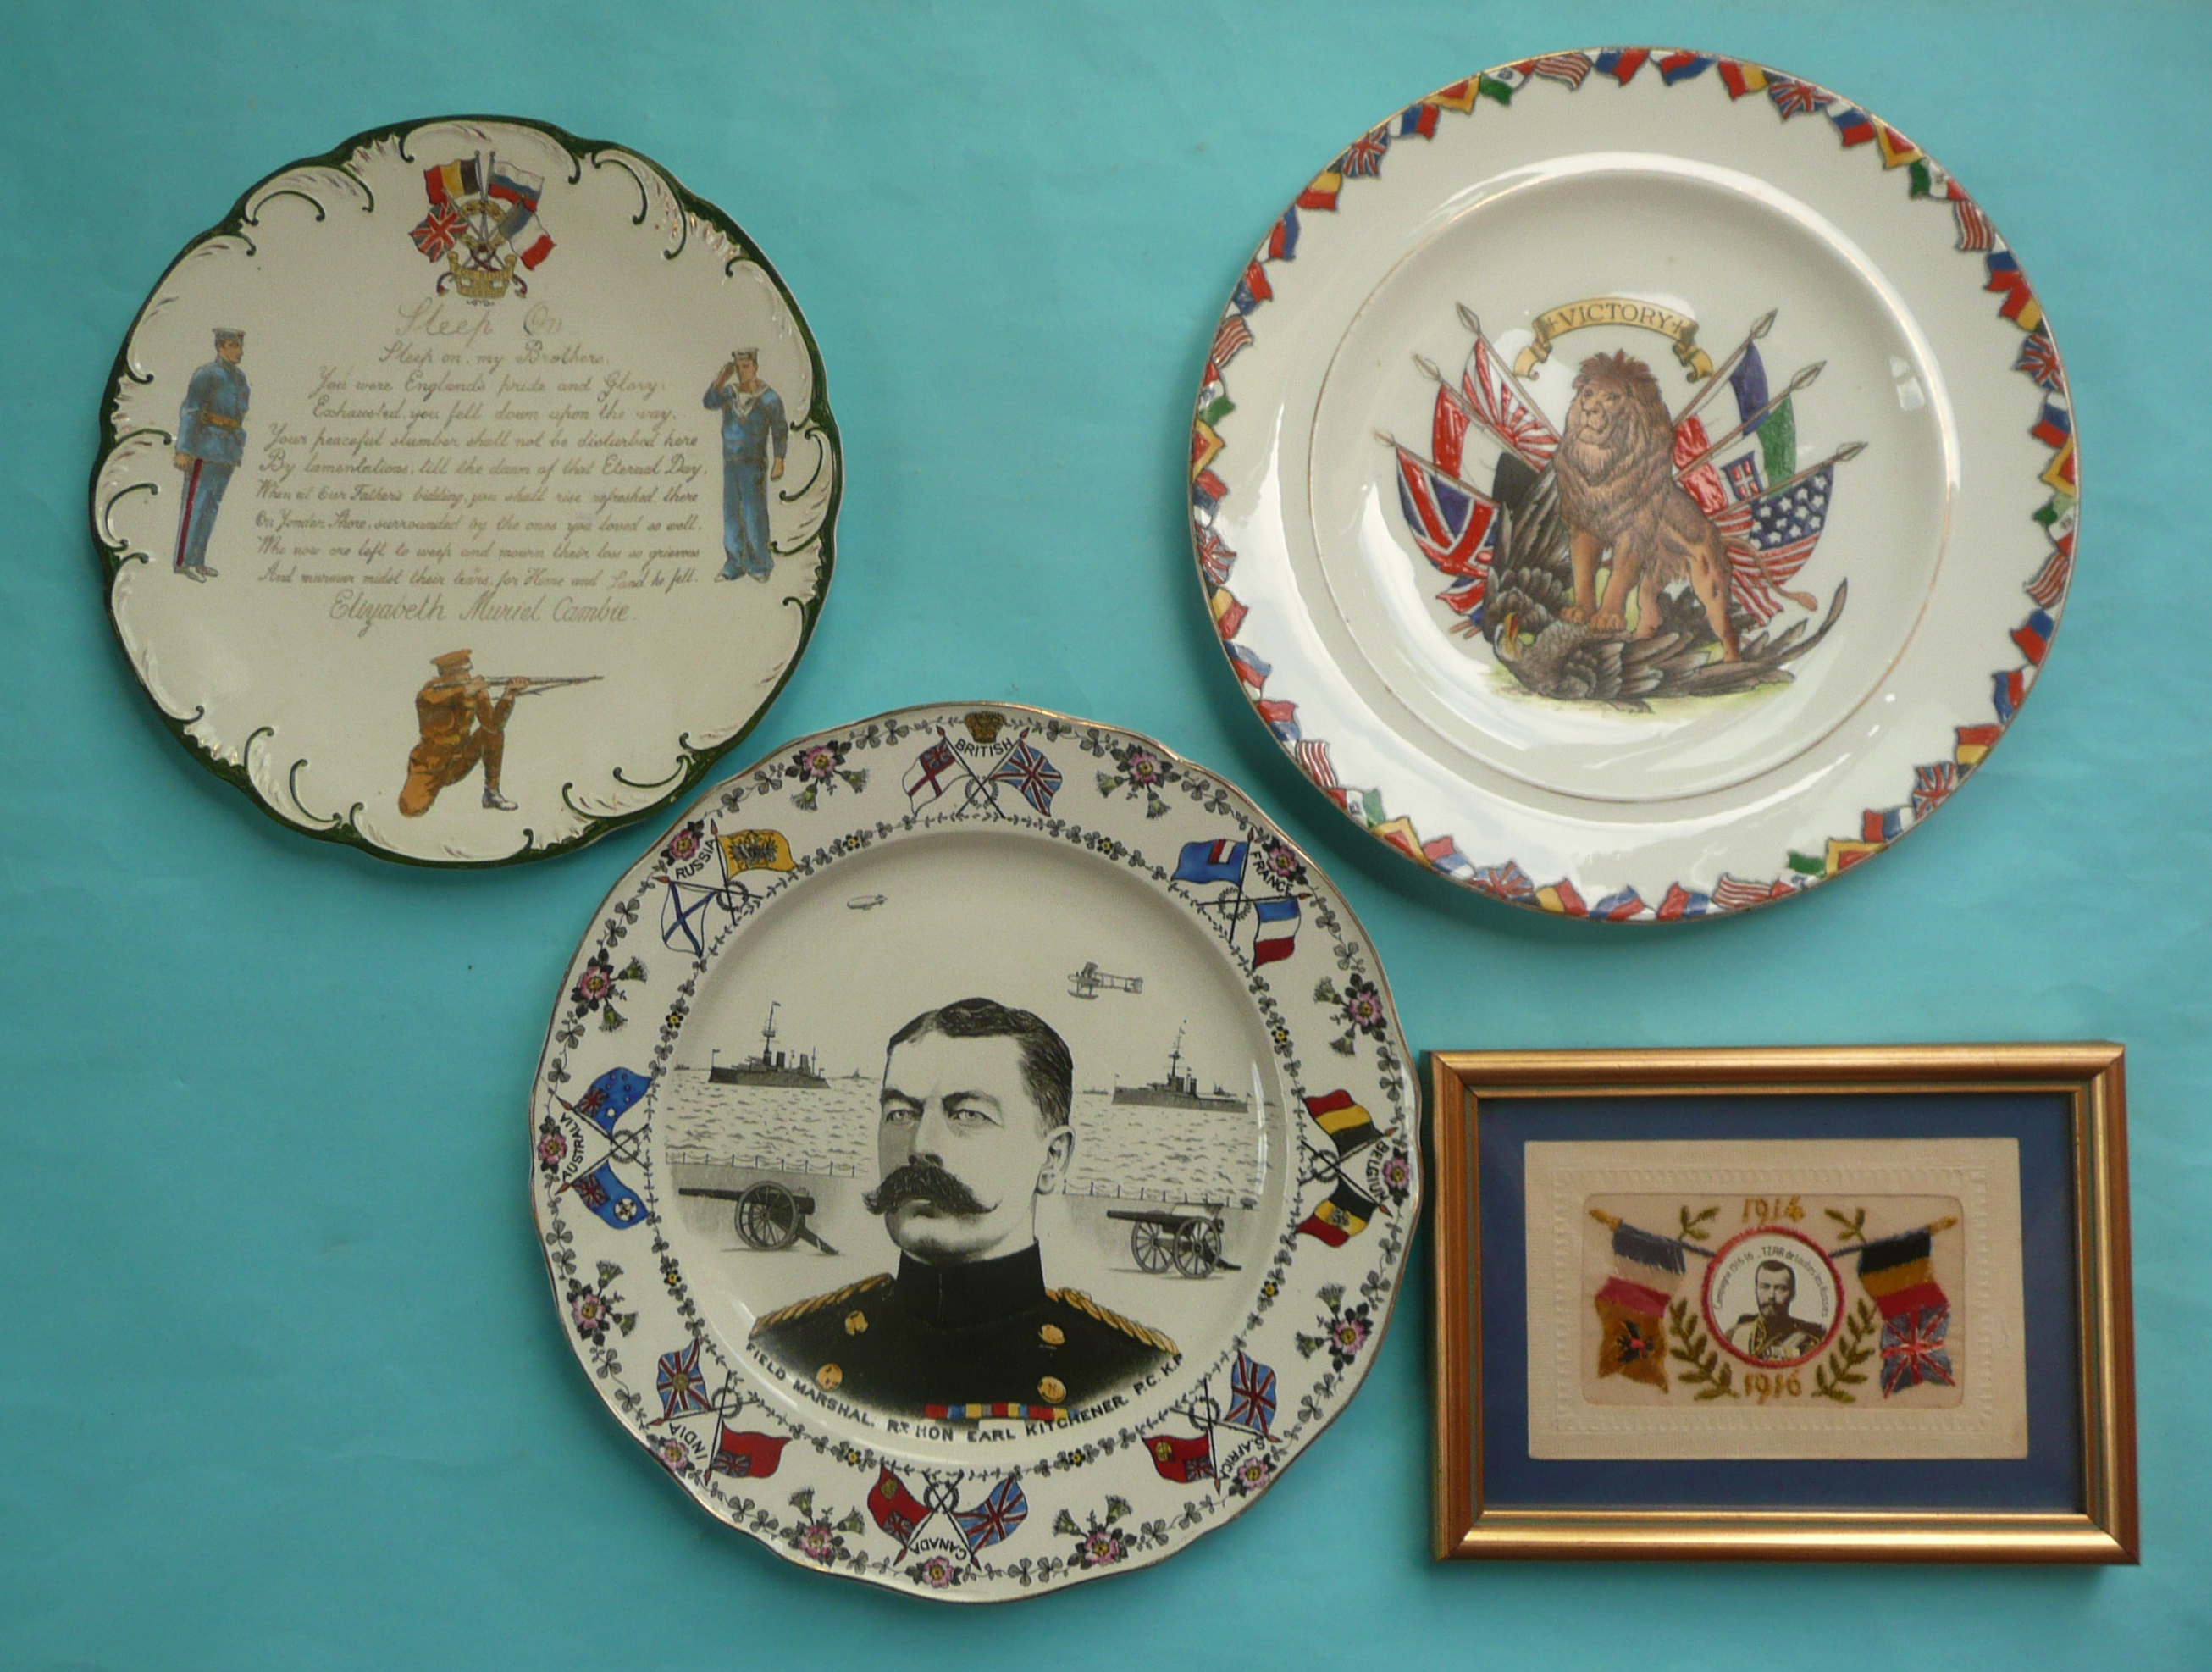 Lot 53 - World War I: a pottery plate by Till & Sons depicting Kitchener, another inscribed with verse and